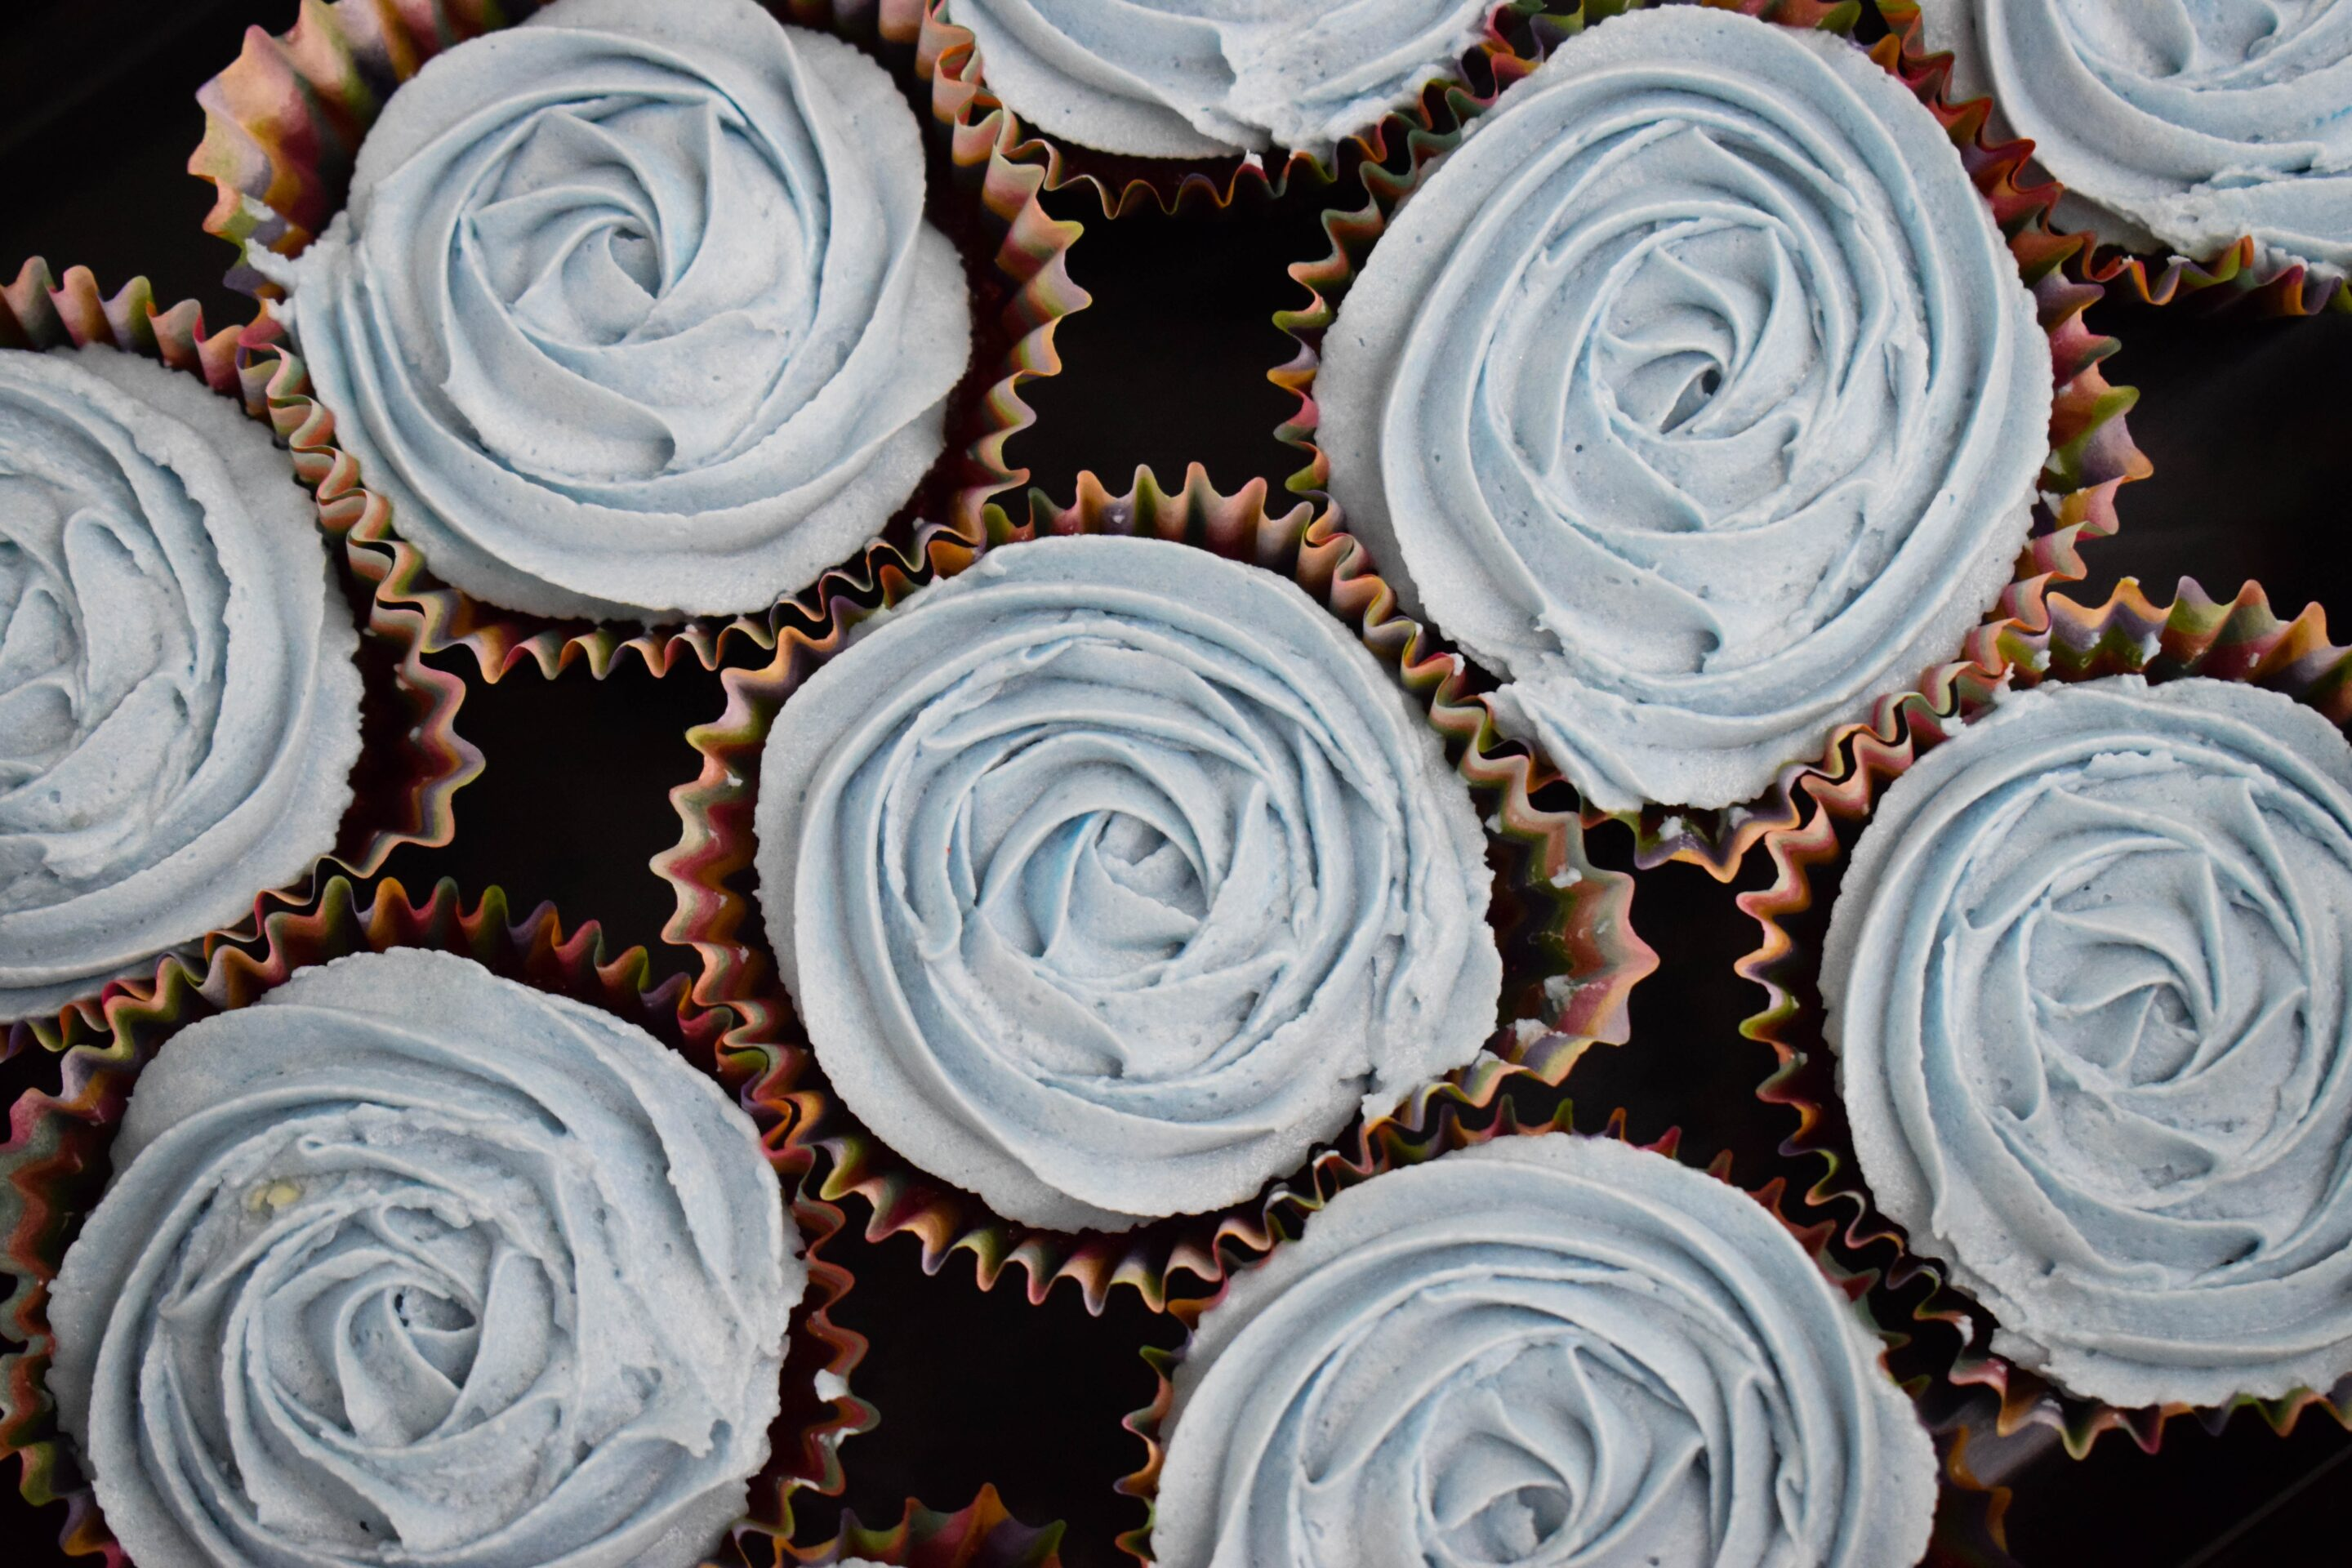 Make the perfect cupcakes every time with these tips!